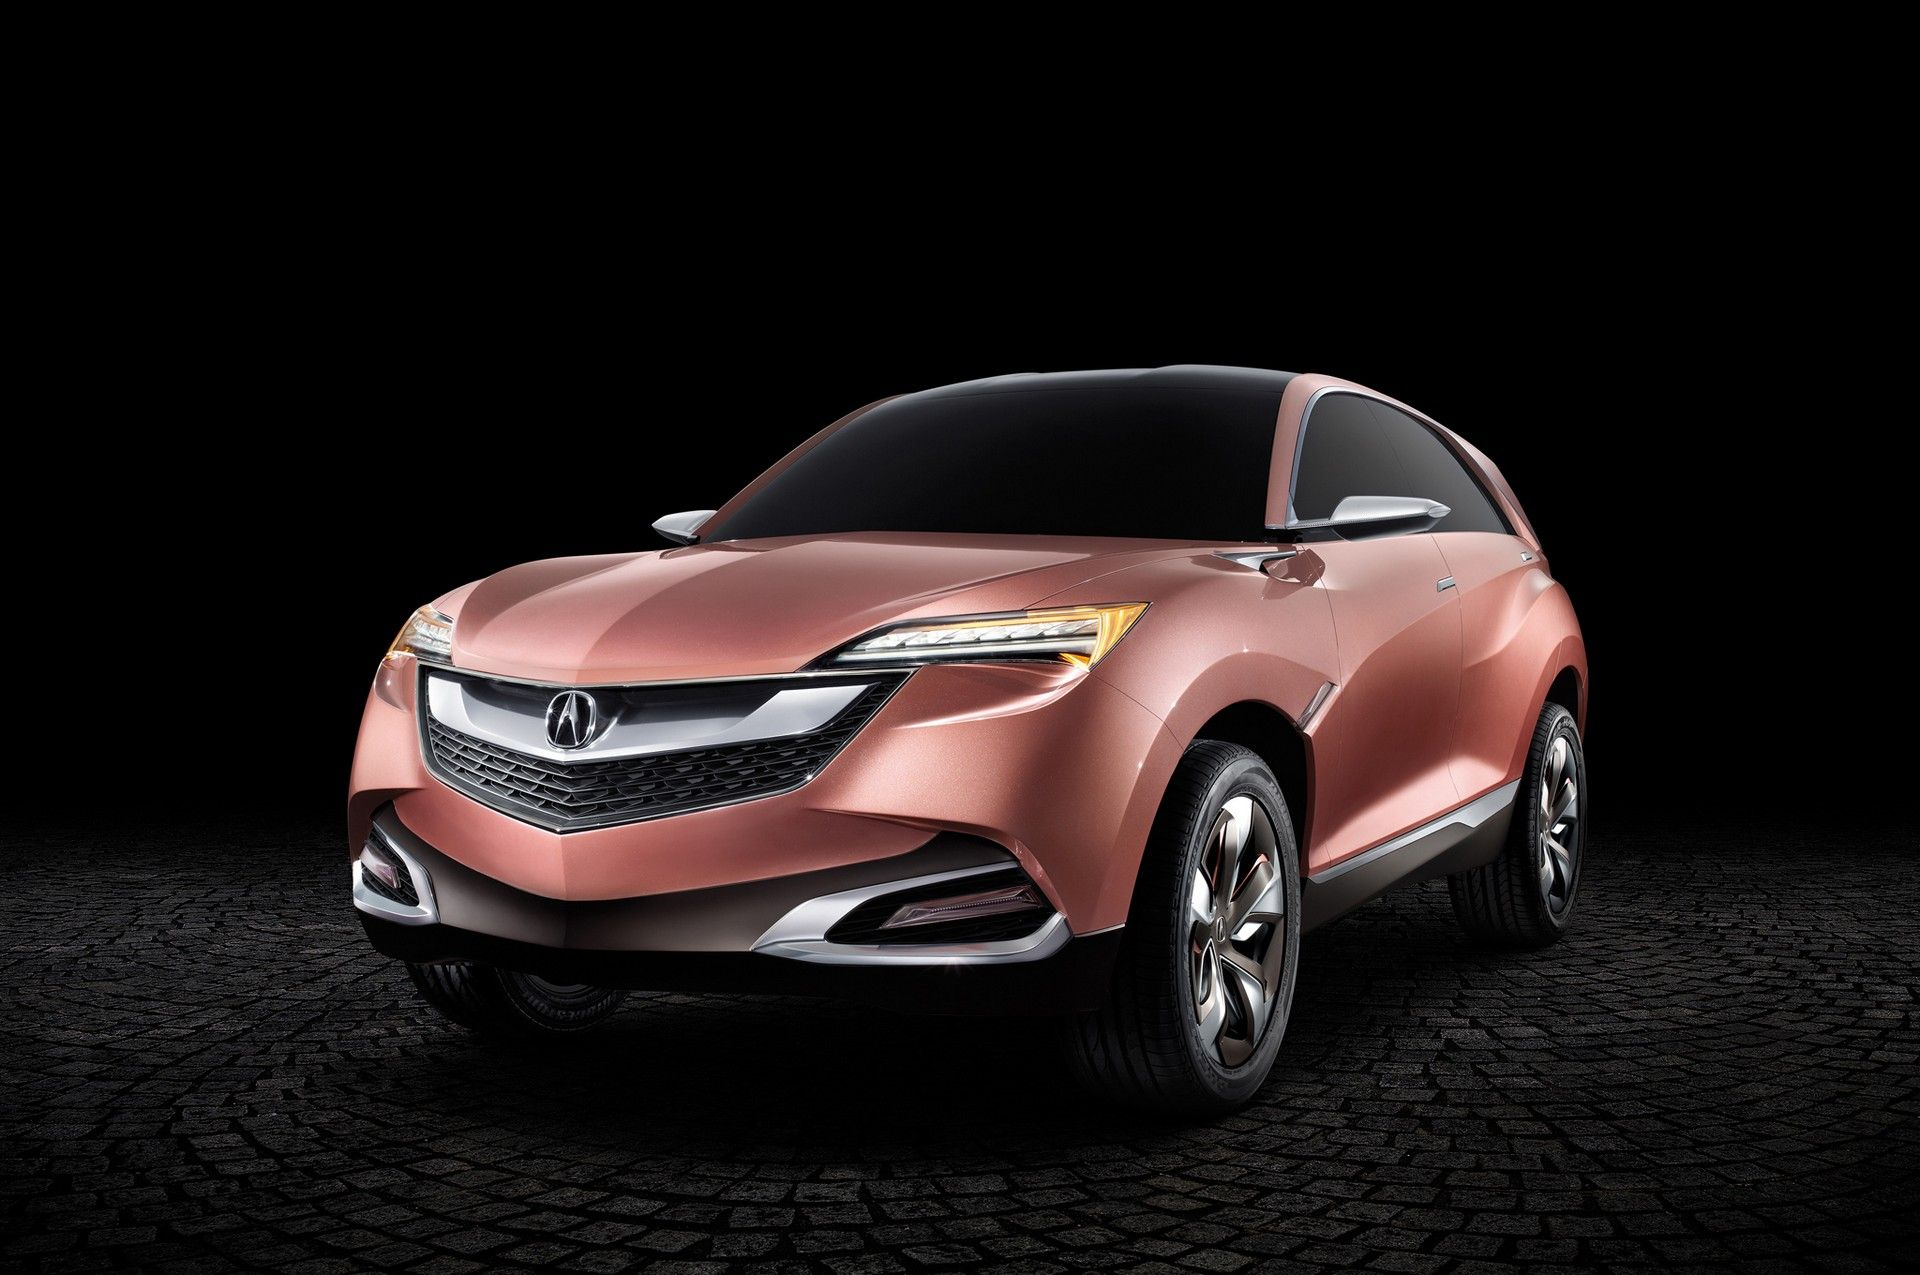 2020 Acura Rdx Release Date 2020 Acura Rdx Is Cars And